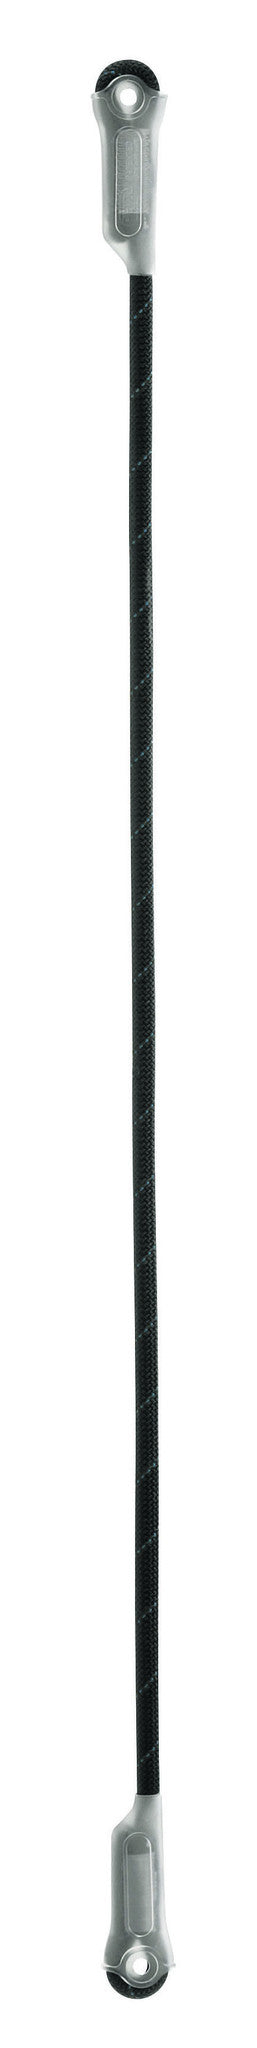 JANE rope lanyard, Black, 150cm